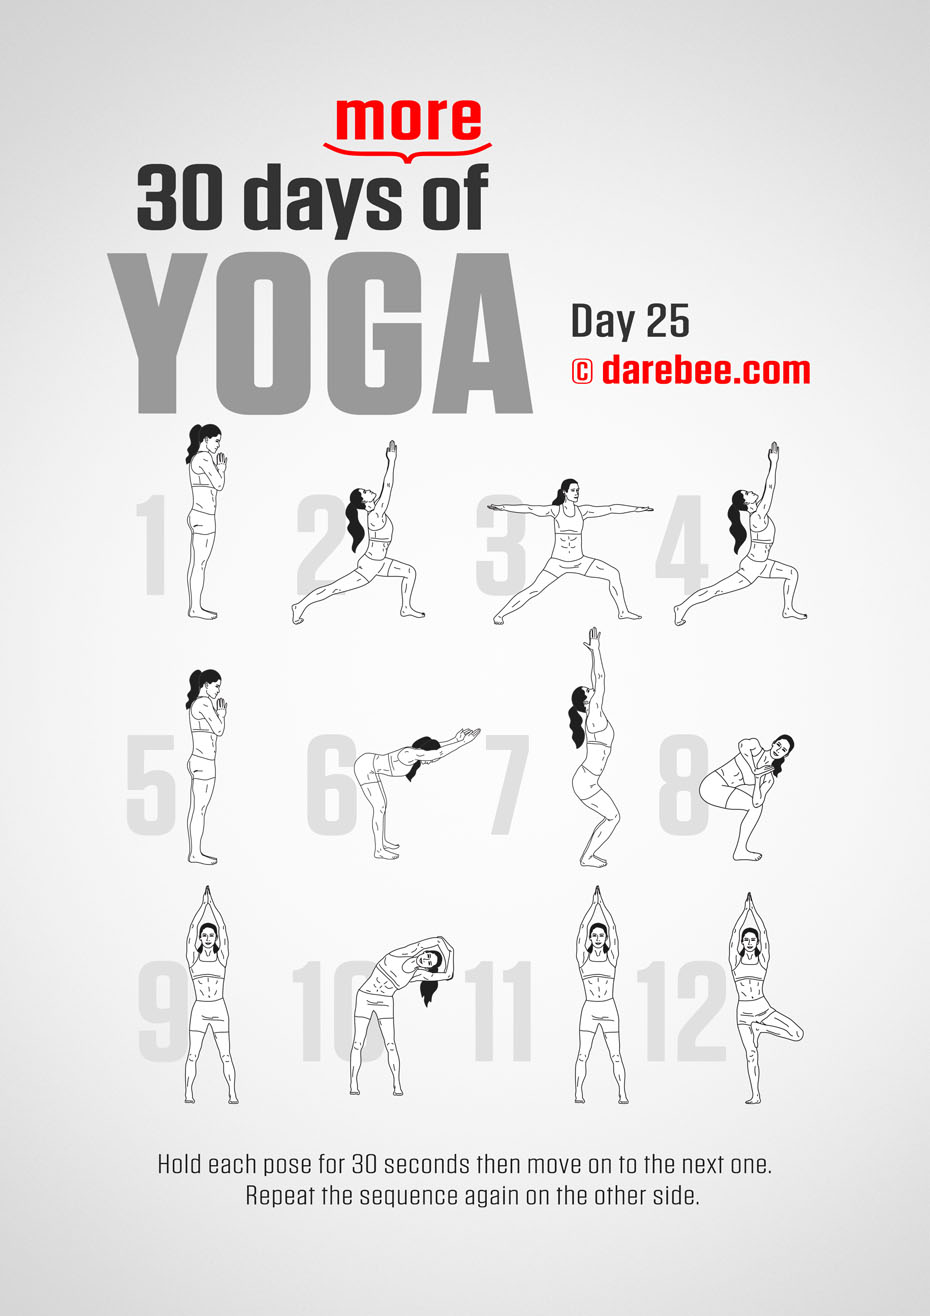 30 Days More of Yoga - Program by DAREBEE